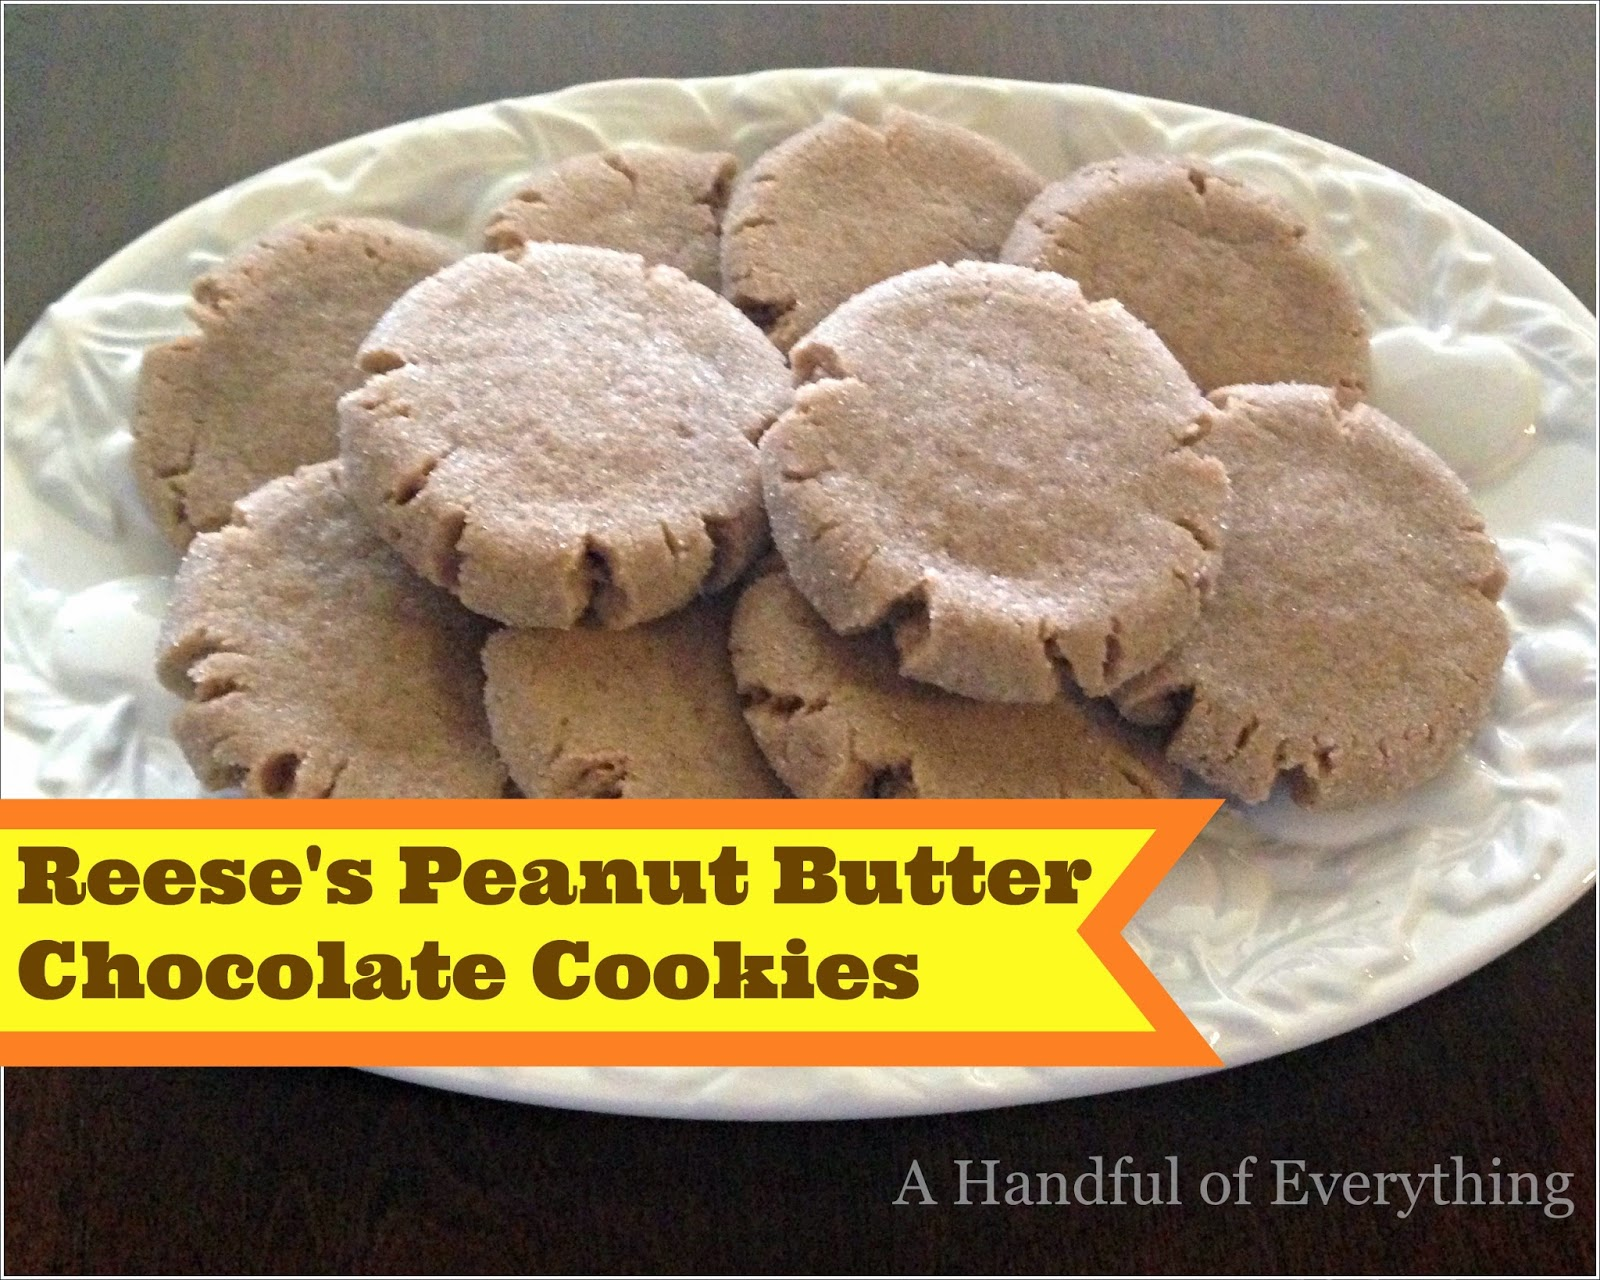 Reese's Peanut Butter Chocolate Cookies